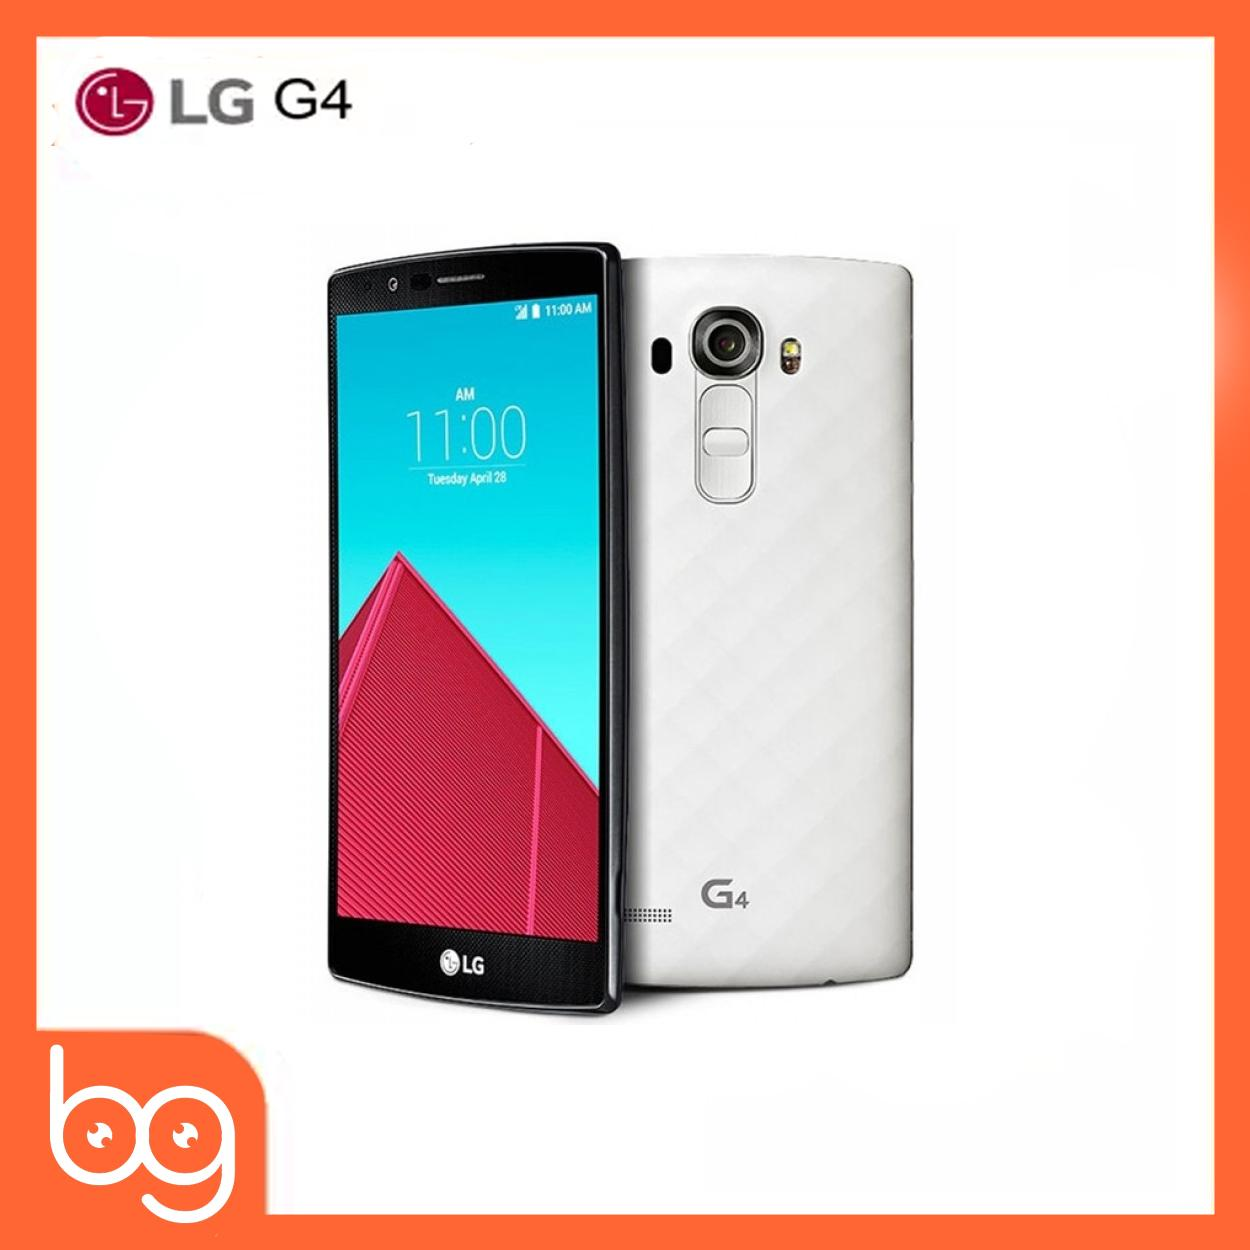 LG Philippines - LG Phone for sale - prices & reviews | Lazada